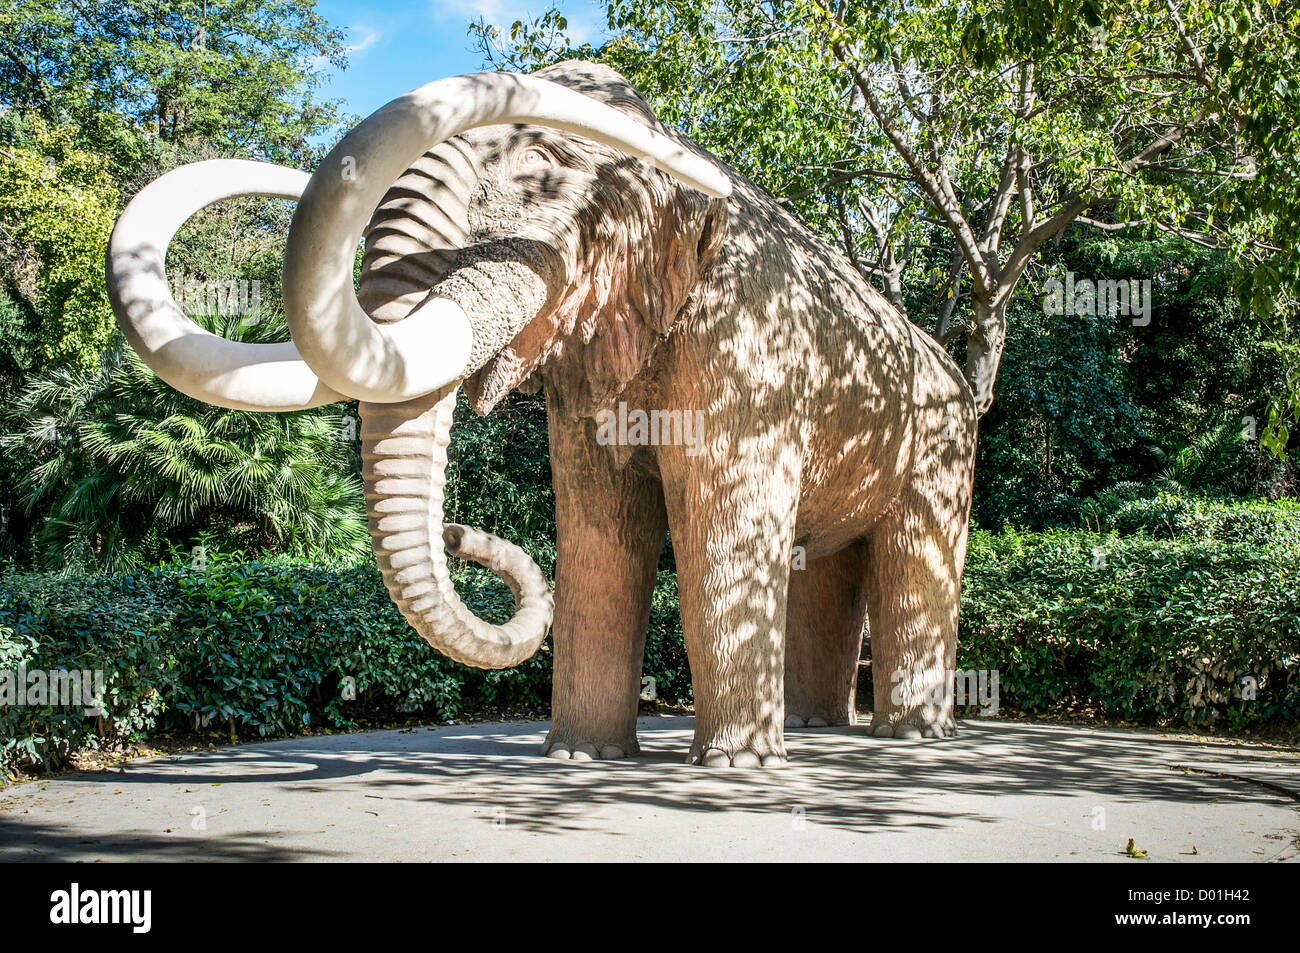 Huge Sculpture Of A Woolly Mammoth In The Parc De La Ciutadella In Stock Photo Alamy